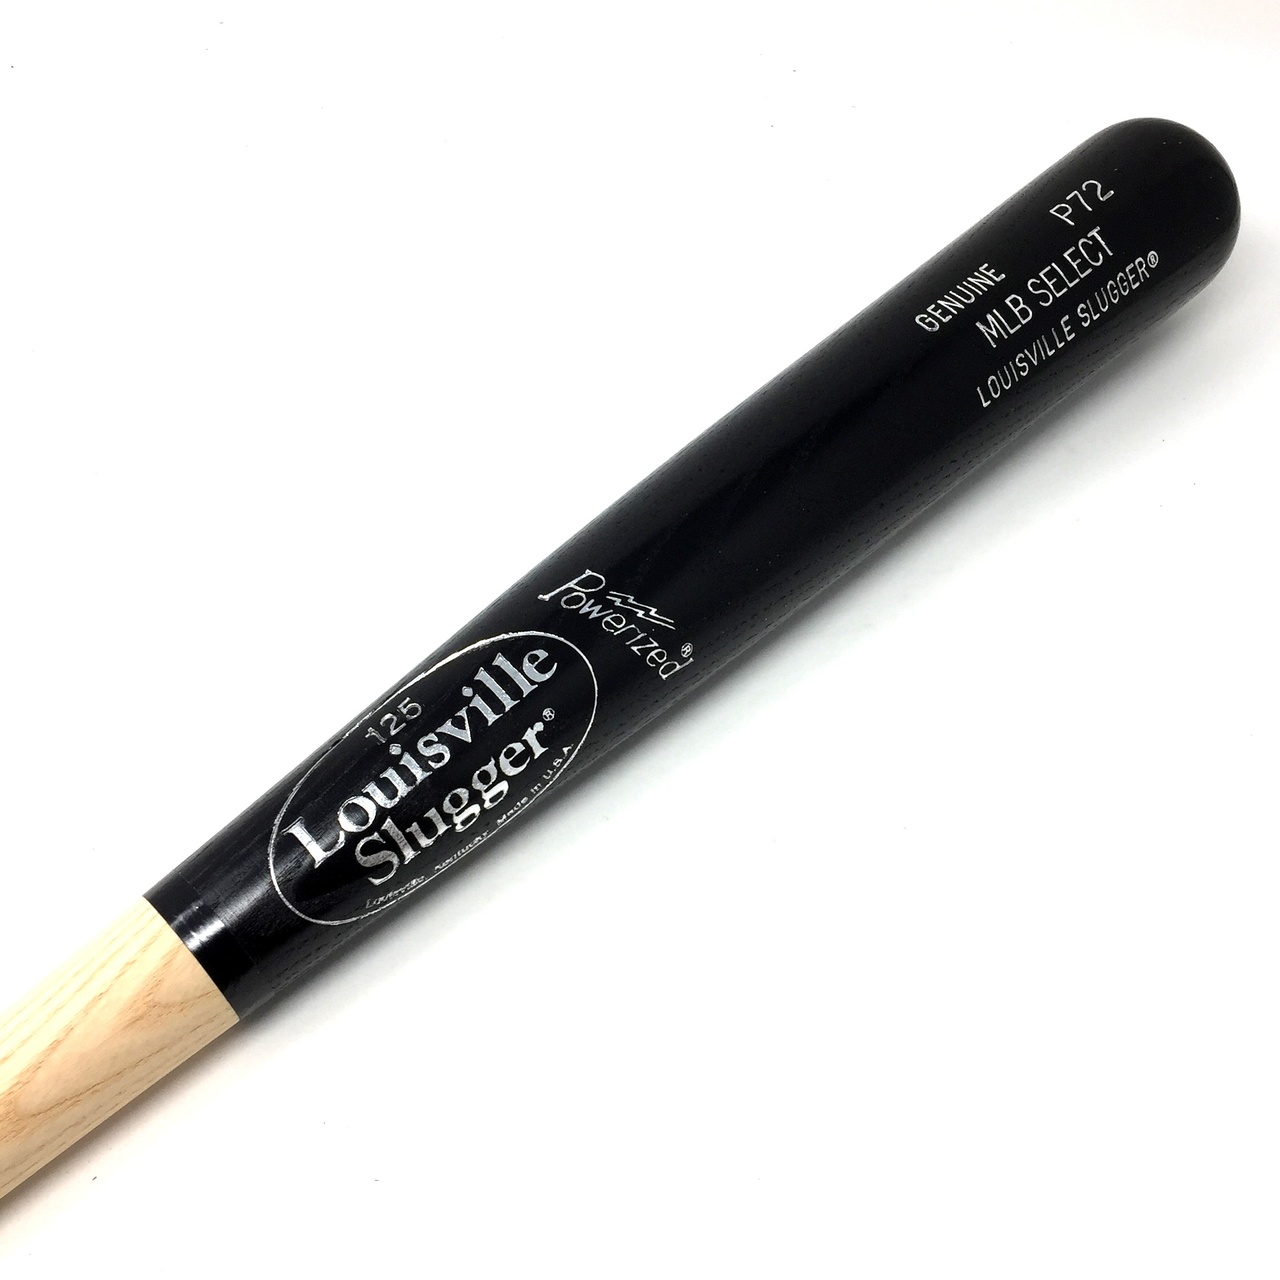 louisville-slugger-p72-mlb-select-ash-black-wood-baseball-bat-33-5-inch WBBP14P72NBK-33.5 inch Louisville Slugger 044277027032 Louisville Slugger P72 Turning Model Wood Baseball Bat. MLB Select Ash